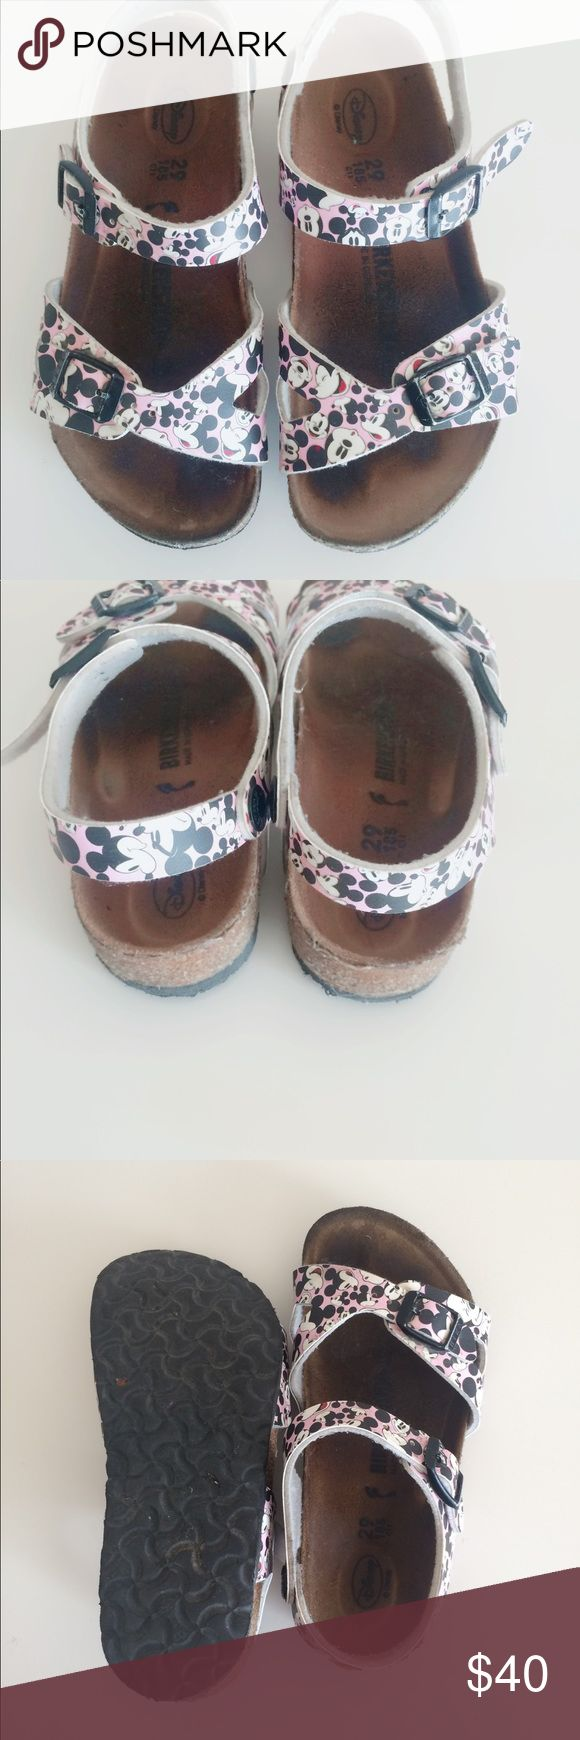 Disney Birkenstock for kids. Cute limited edition Mickey Minnie Mouse in the style rio.  They have been worn by my little one but since outgrown them. Birkenstock Shoes Sandals & Flip Flops